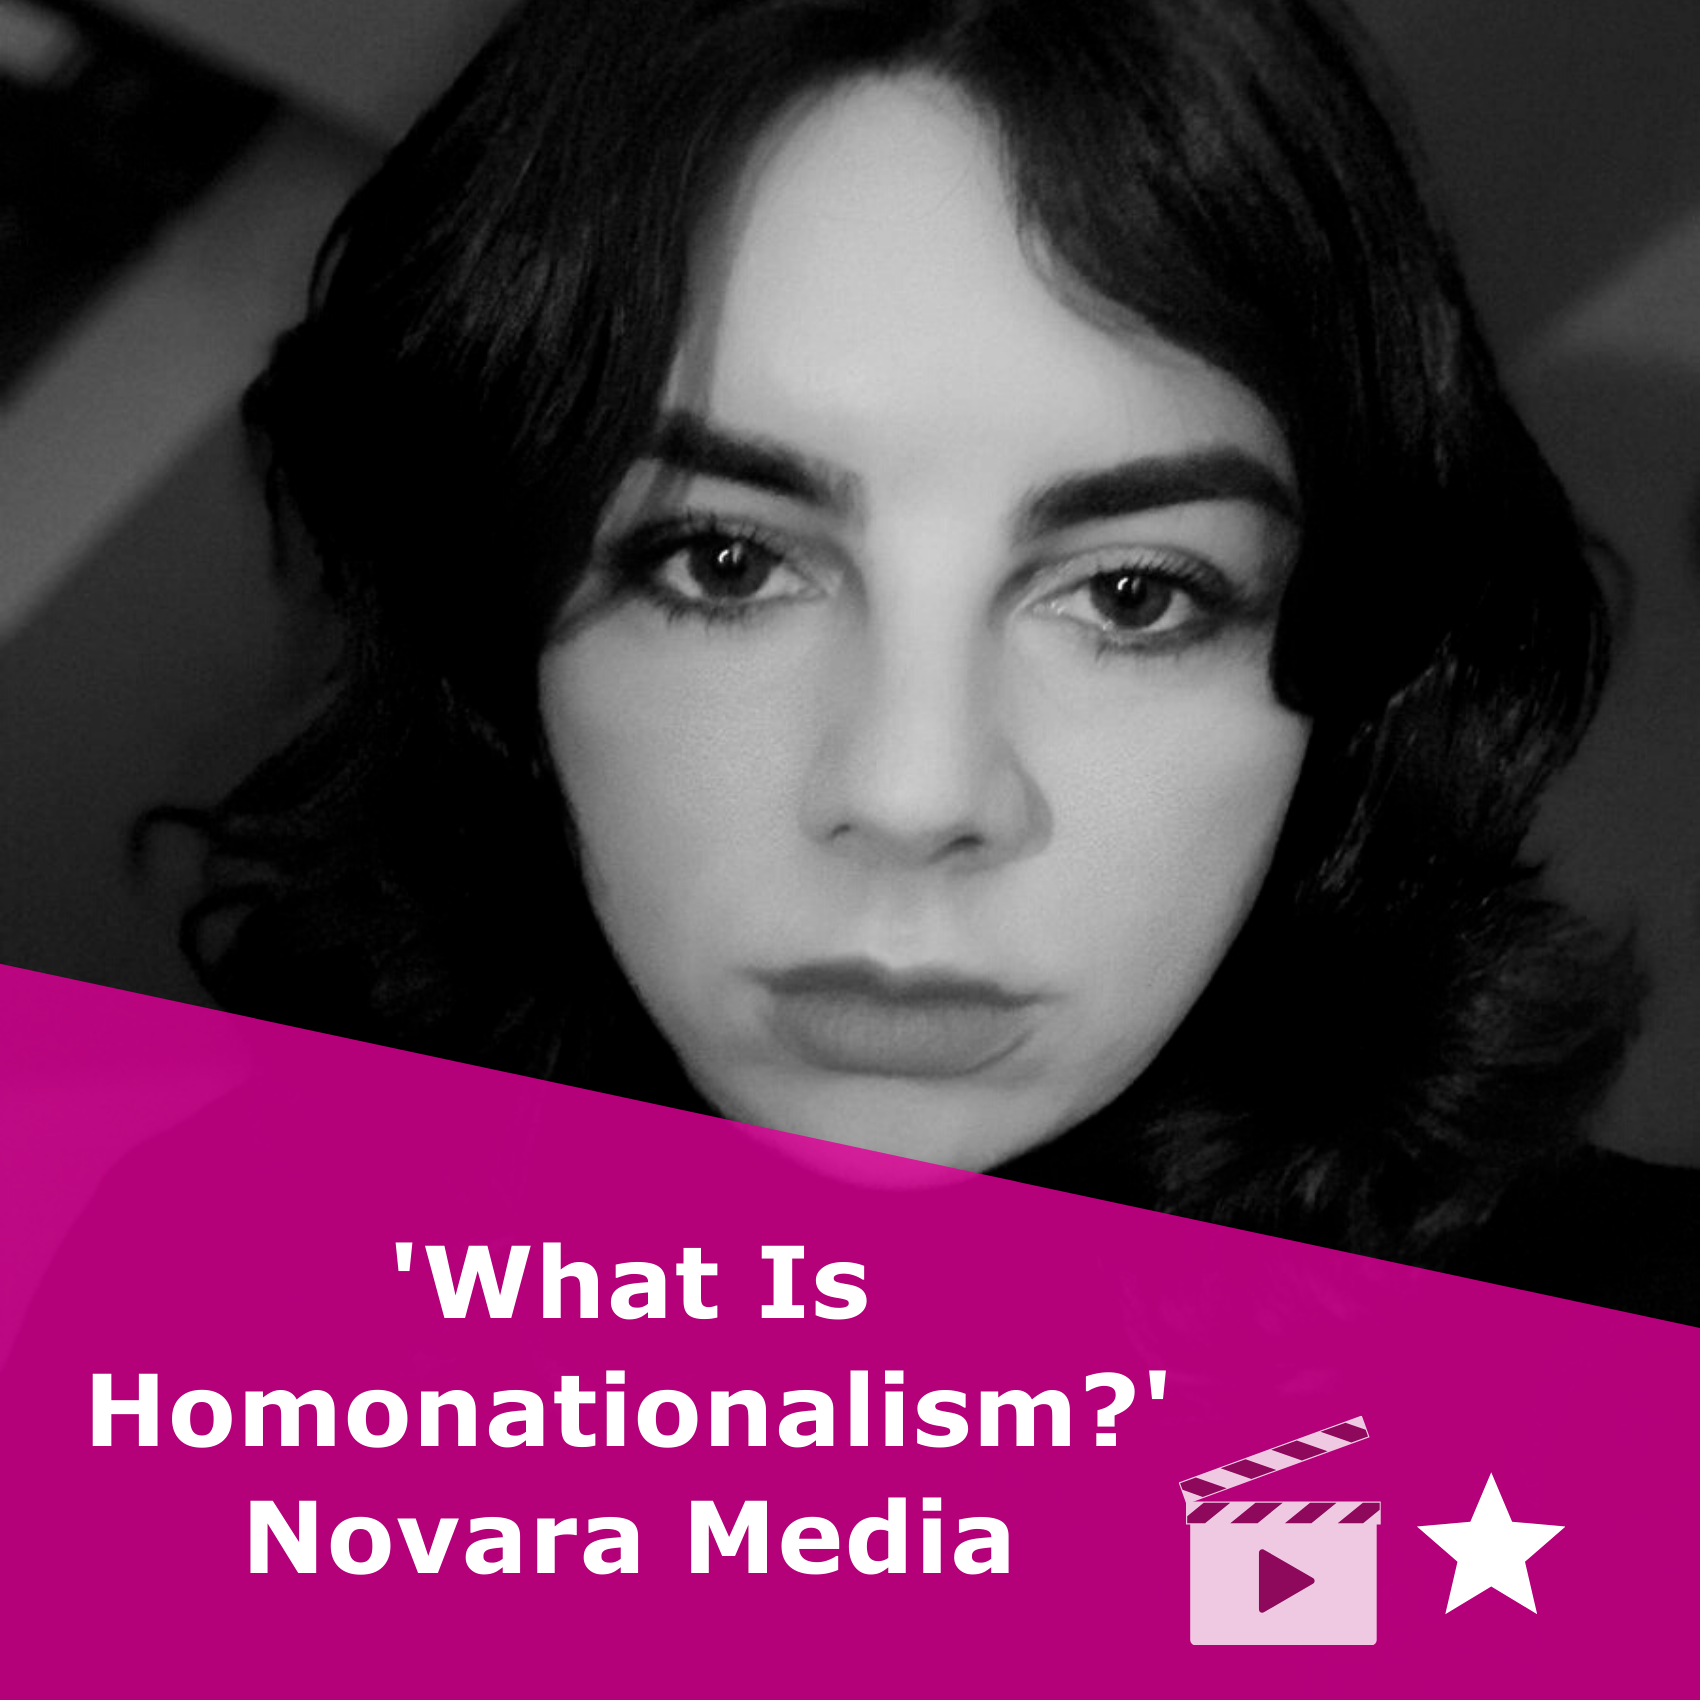 Picture of Shon Faye in black and white. Title 'What Is Homonationalism?'. It is an article from Novara Media, rated one star.